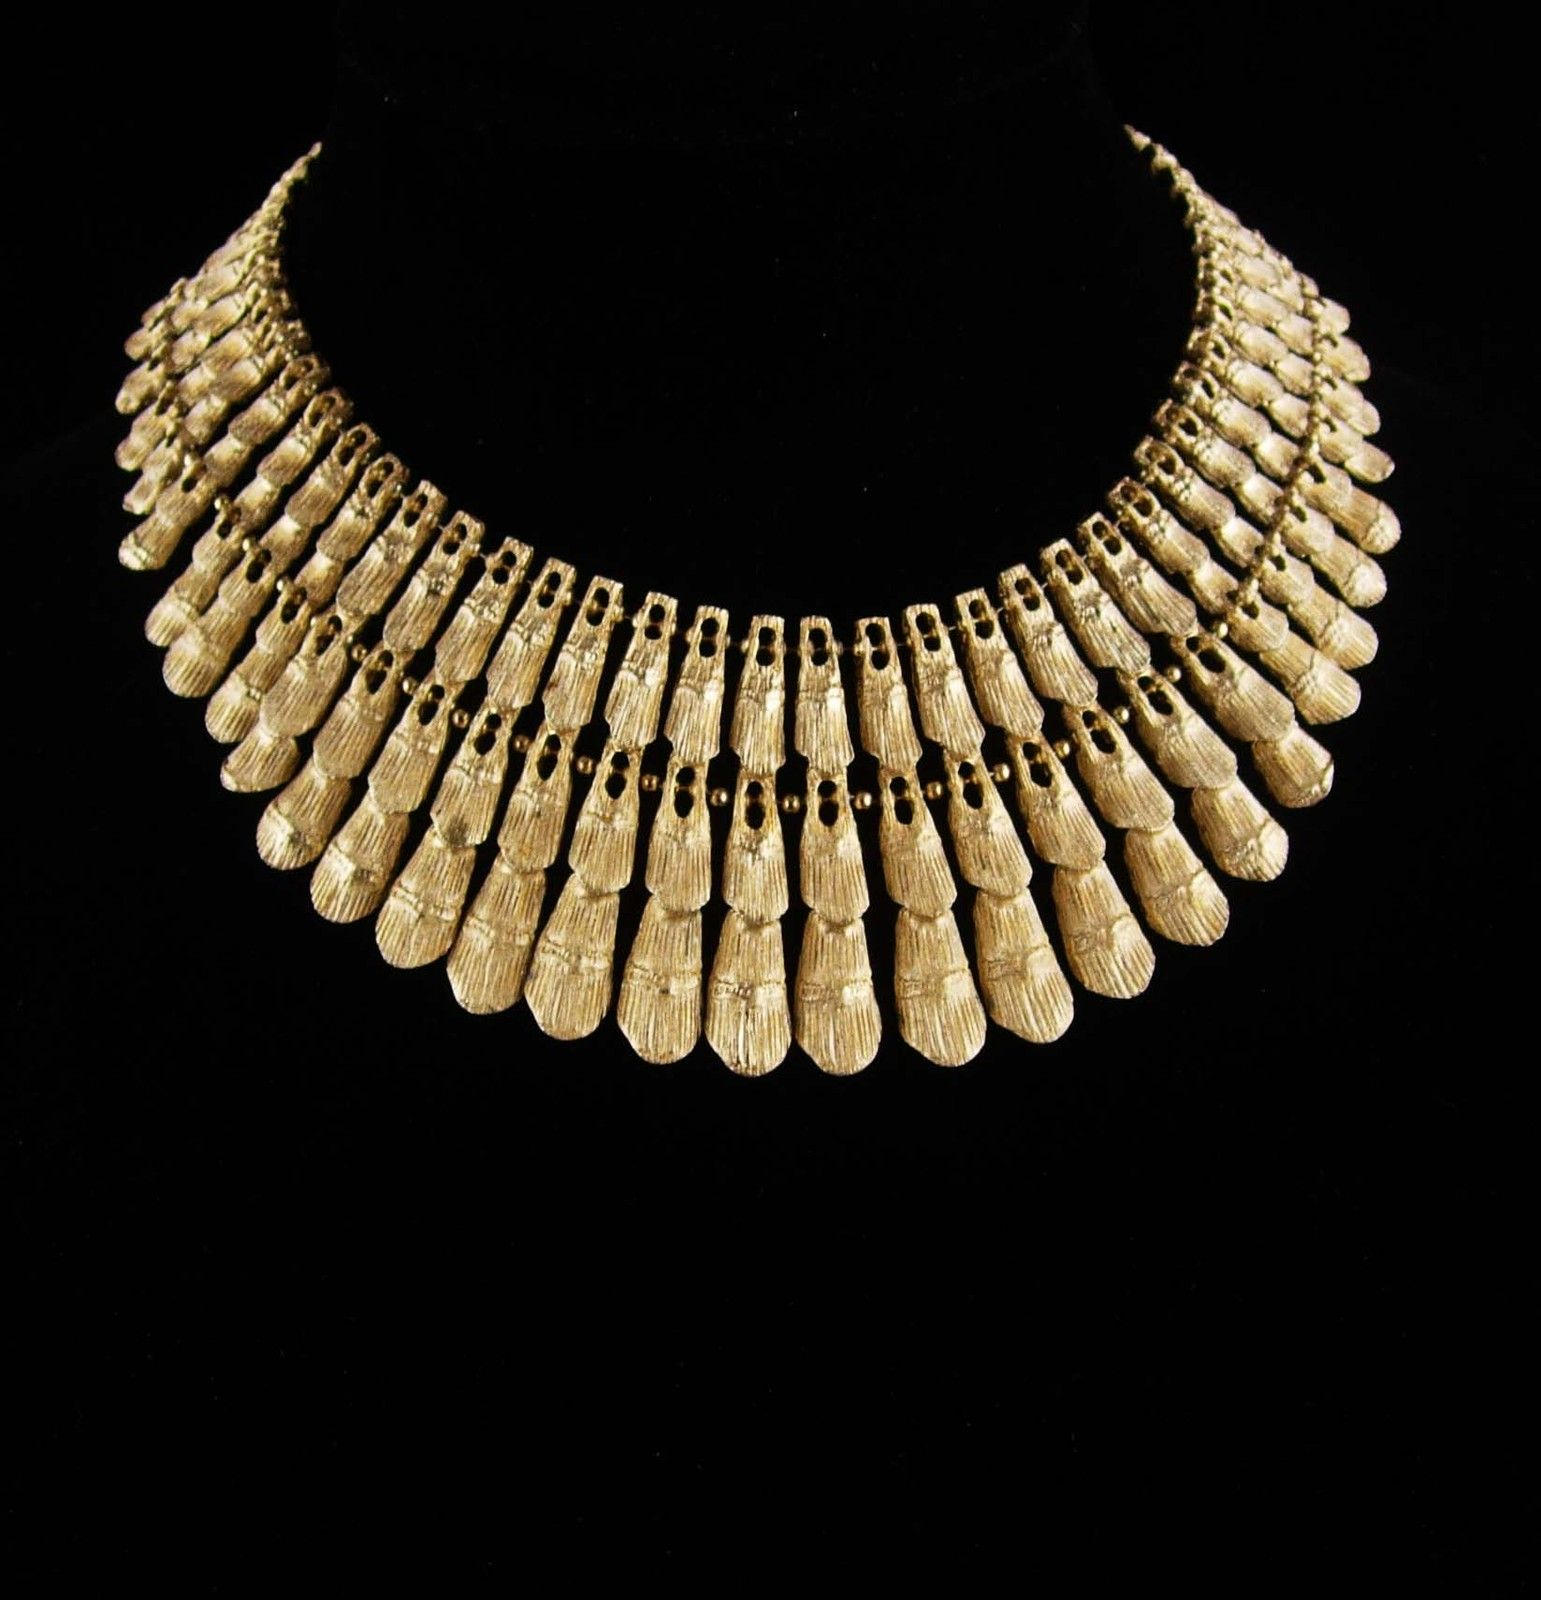 Pin by Cathy Mclemote on Jewelry Gold bib necklace